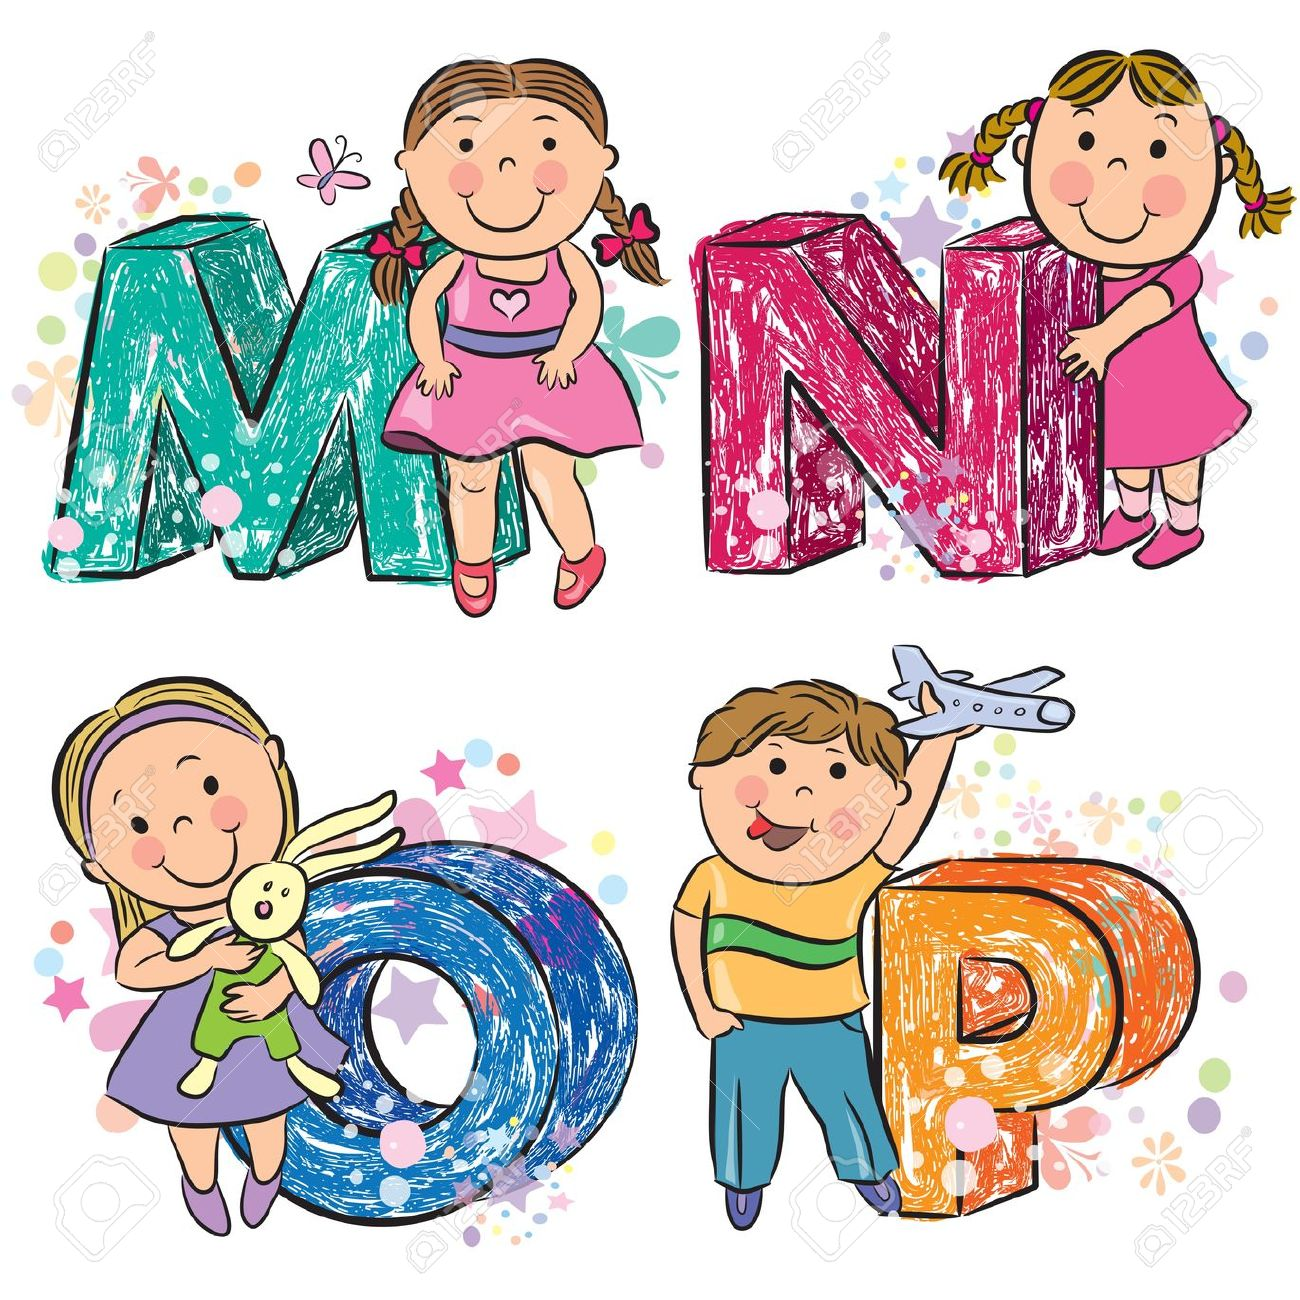 Alphabet kids clipart. Funny with mnop royalty